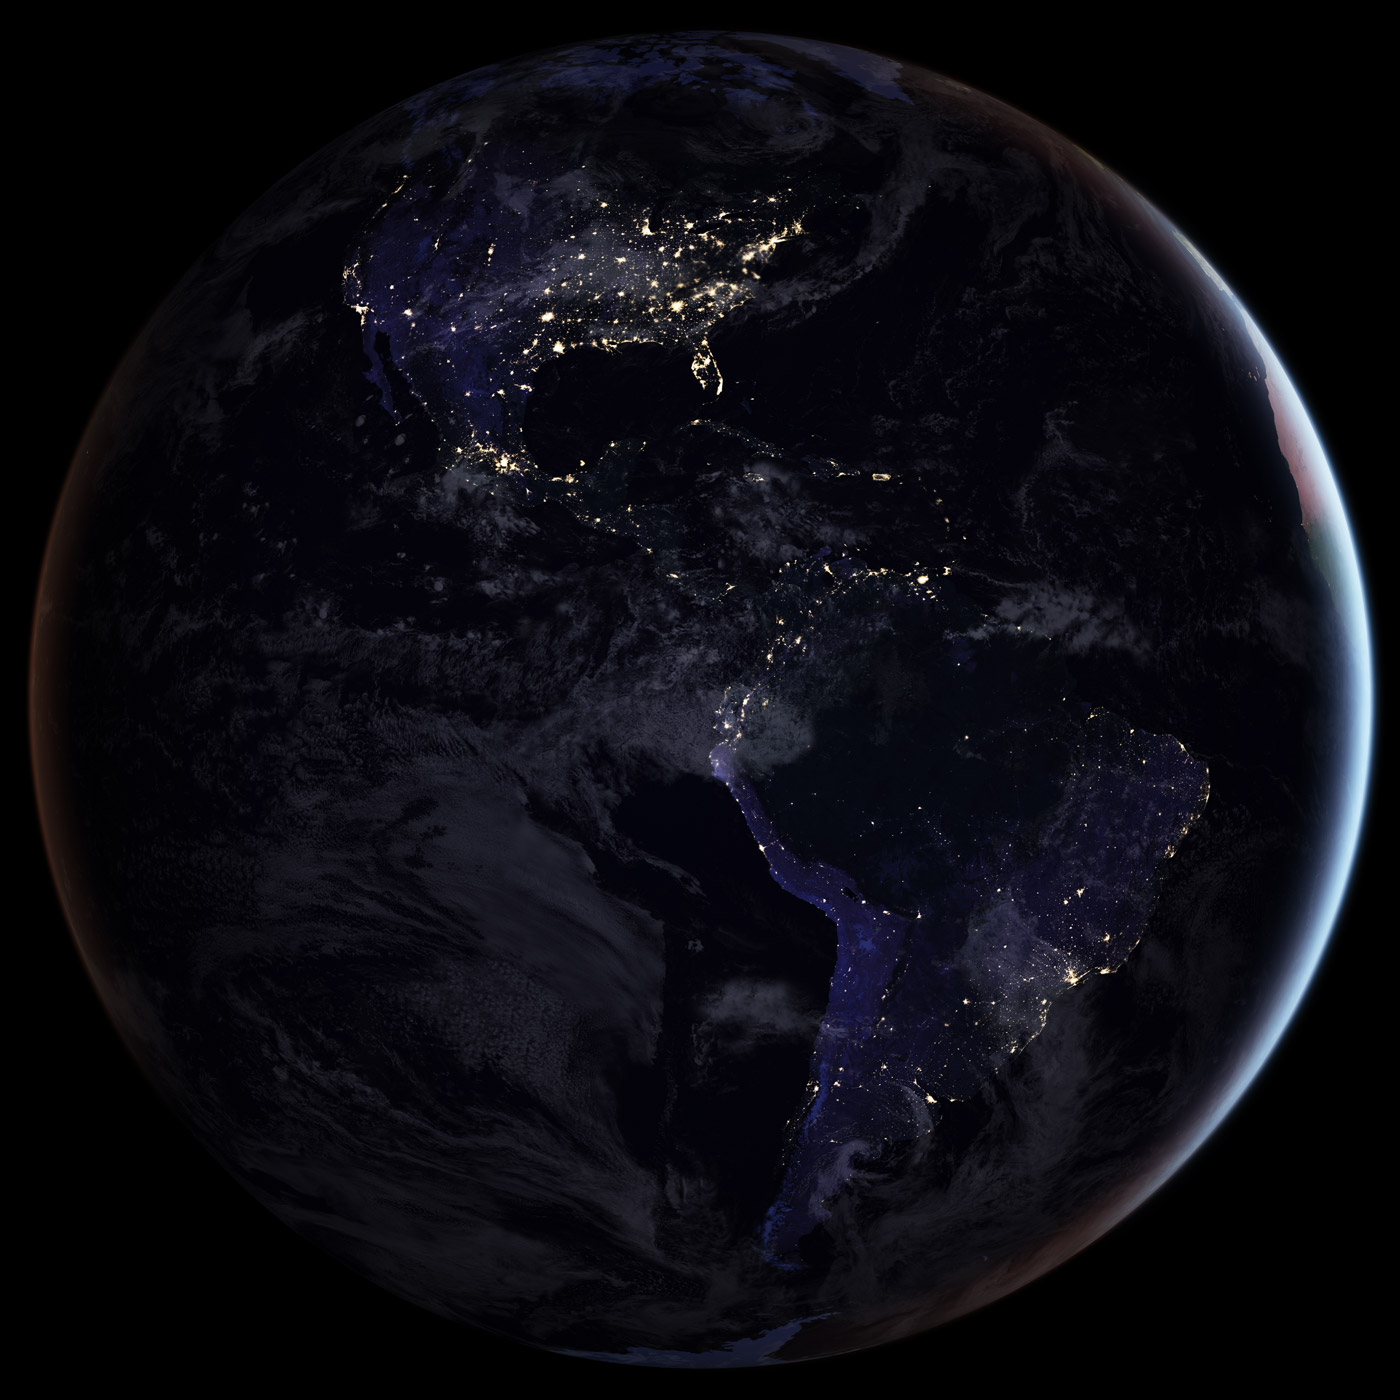 image of Earth's western hemisphere from space